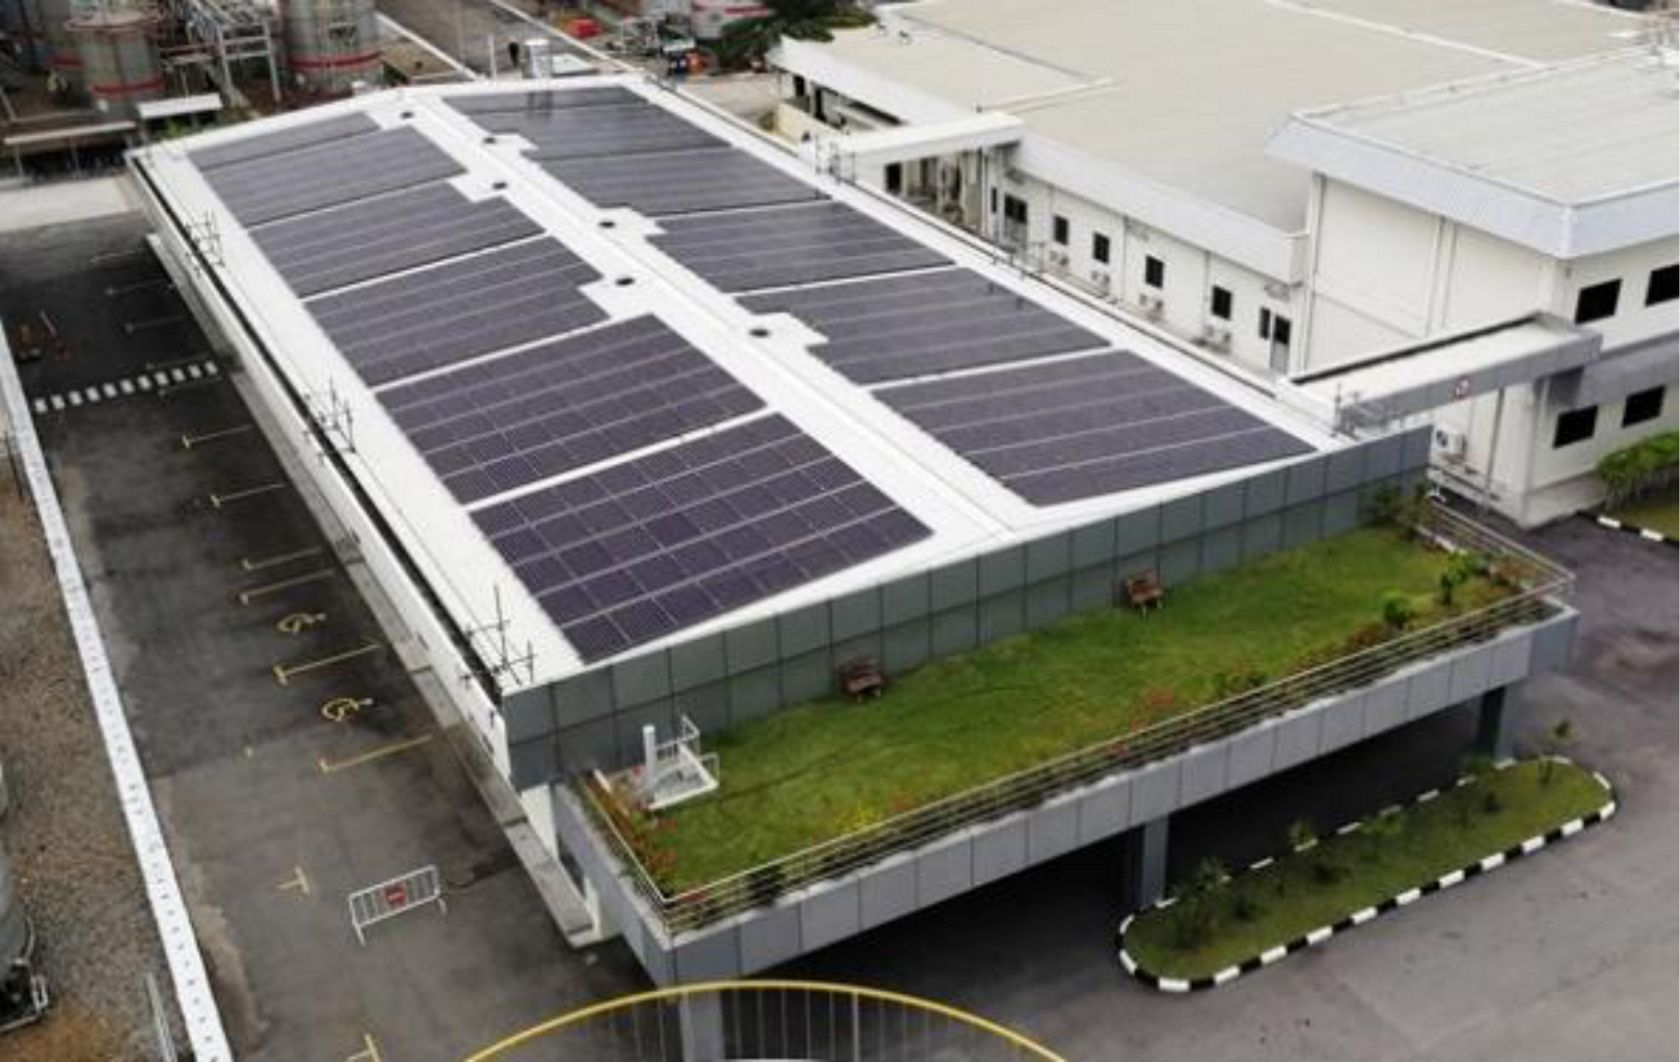 Kao | Kao Penang Group* of Malaysia has started Photovoltaic power